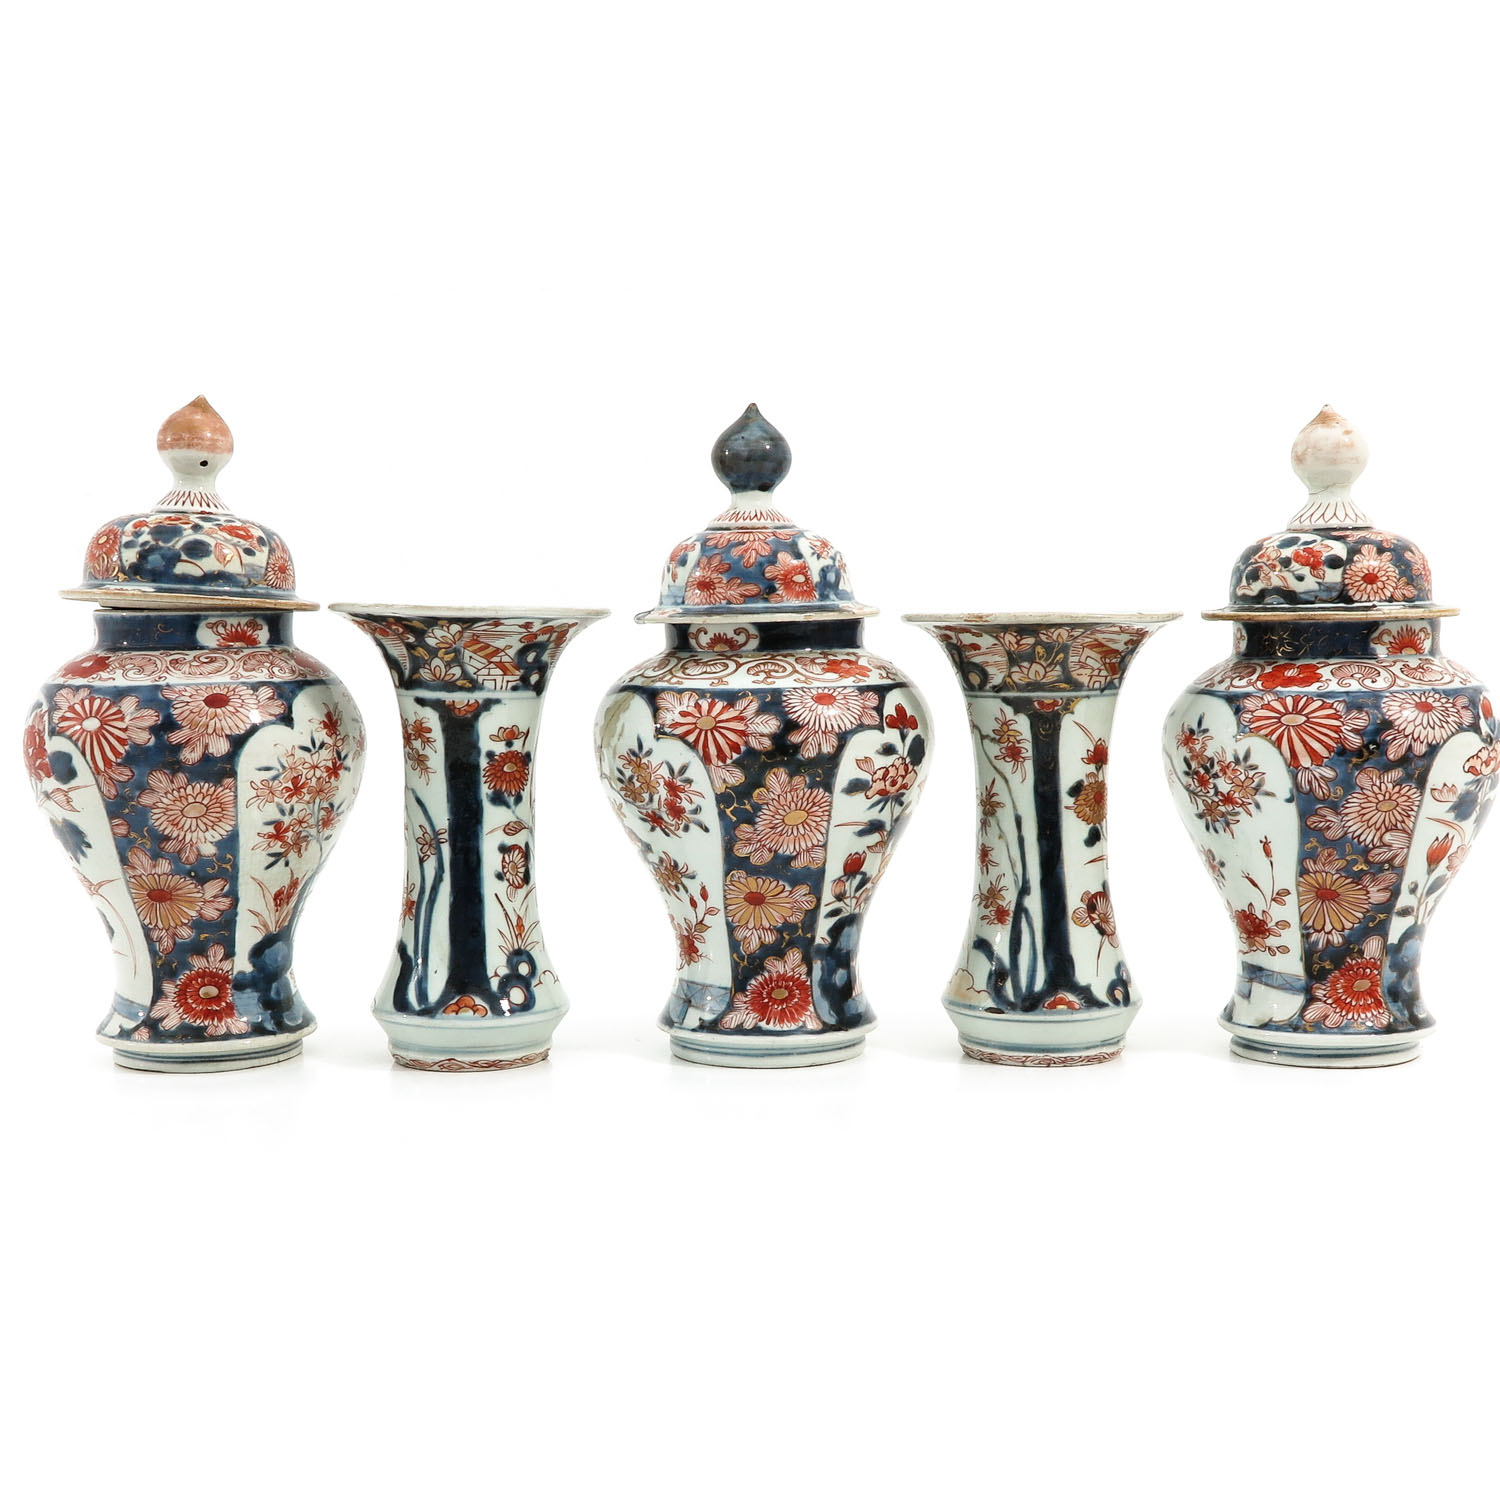 A 5 Piece Imari Garniture Set - Image 4 of 9